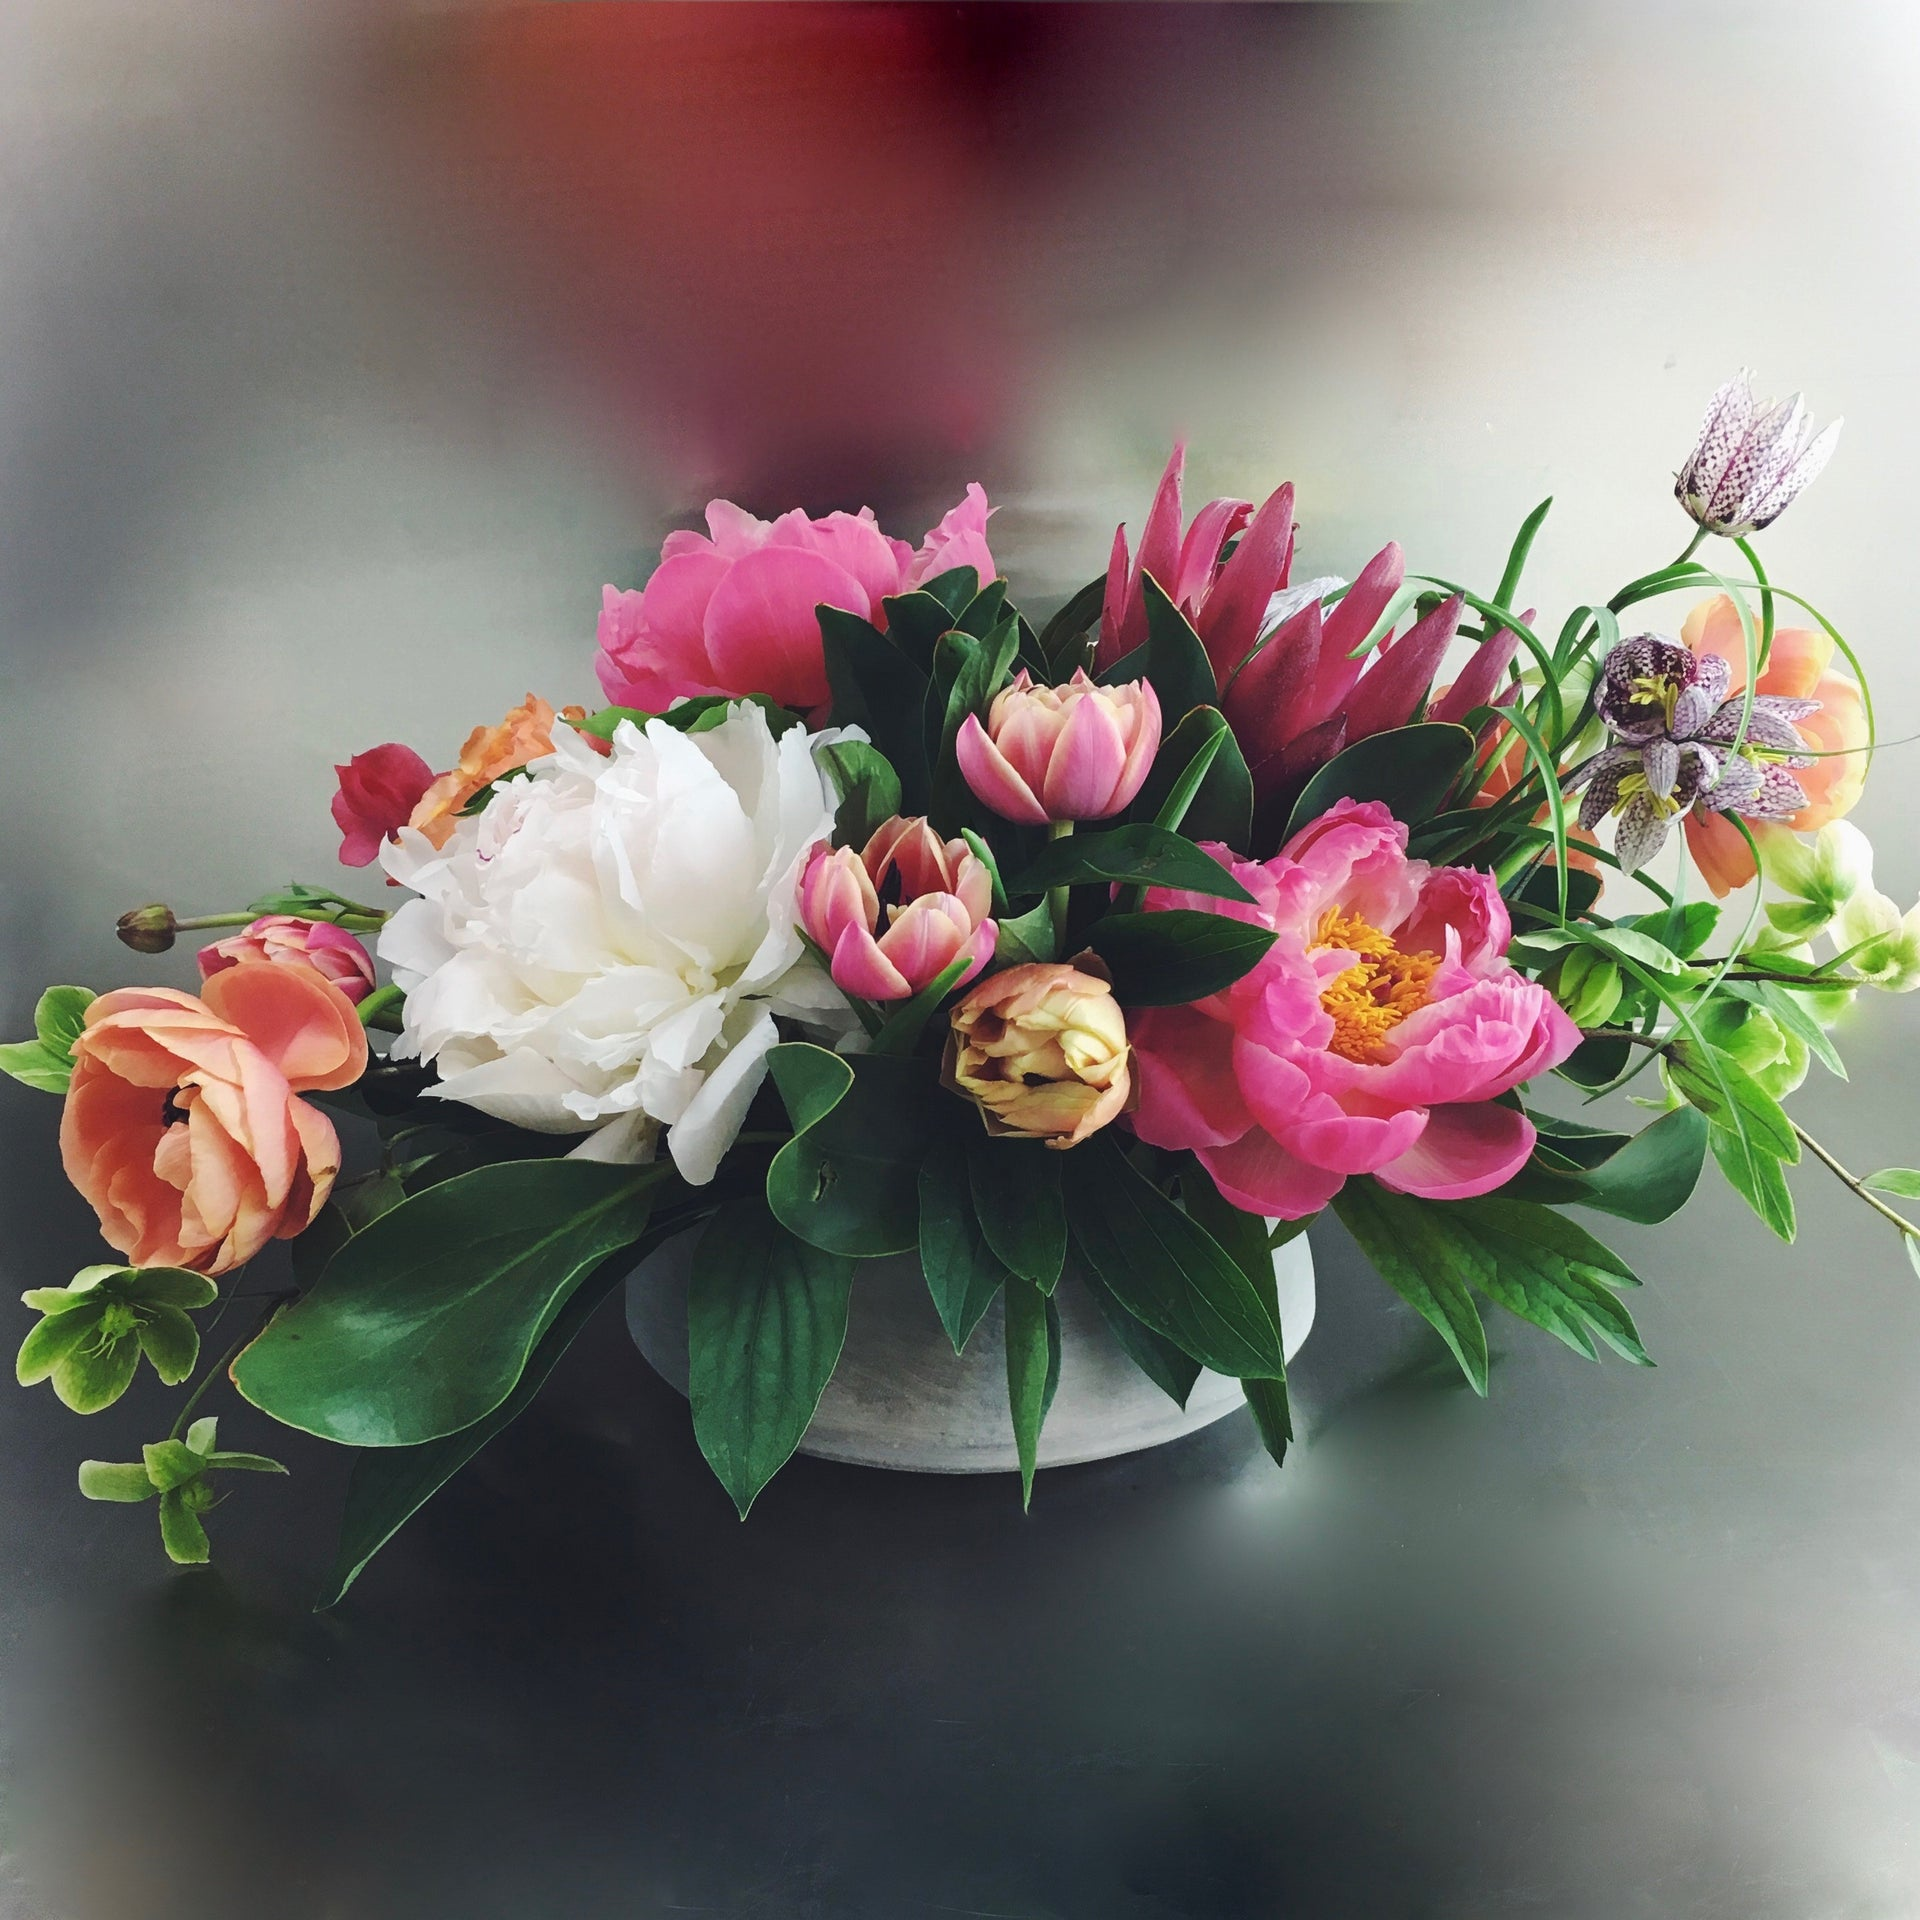 Designer's choice low arrangement using peonies, tulips, and hellebores.